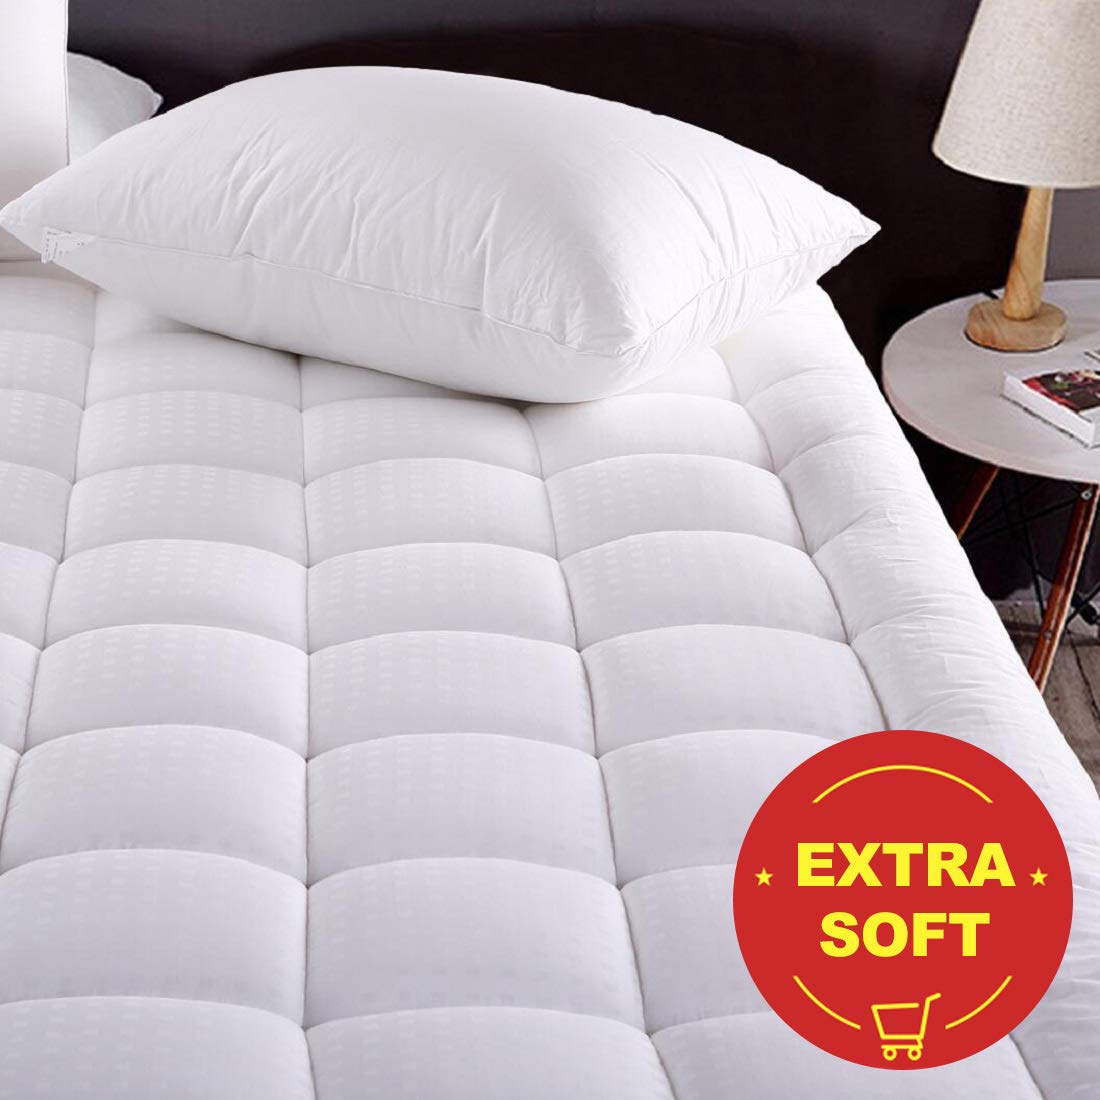 MEROUS Queen Size Cotton Mattress